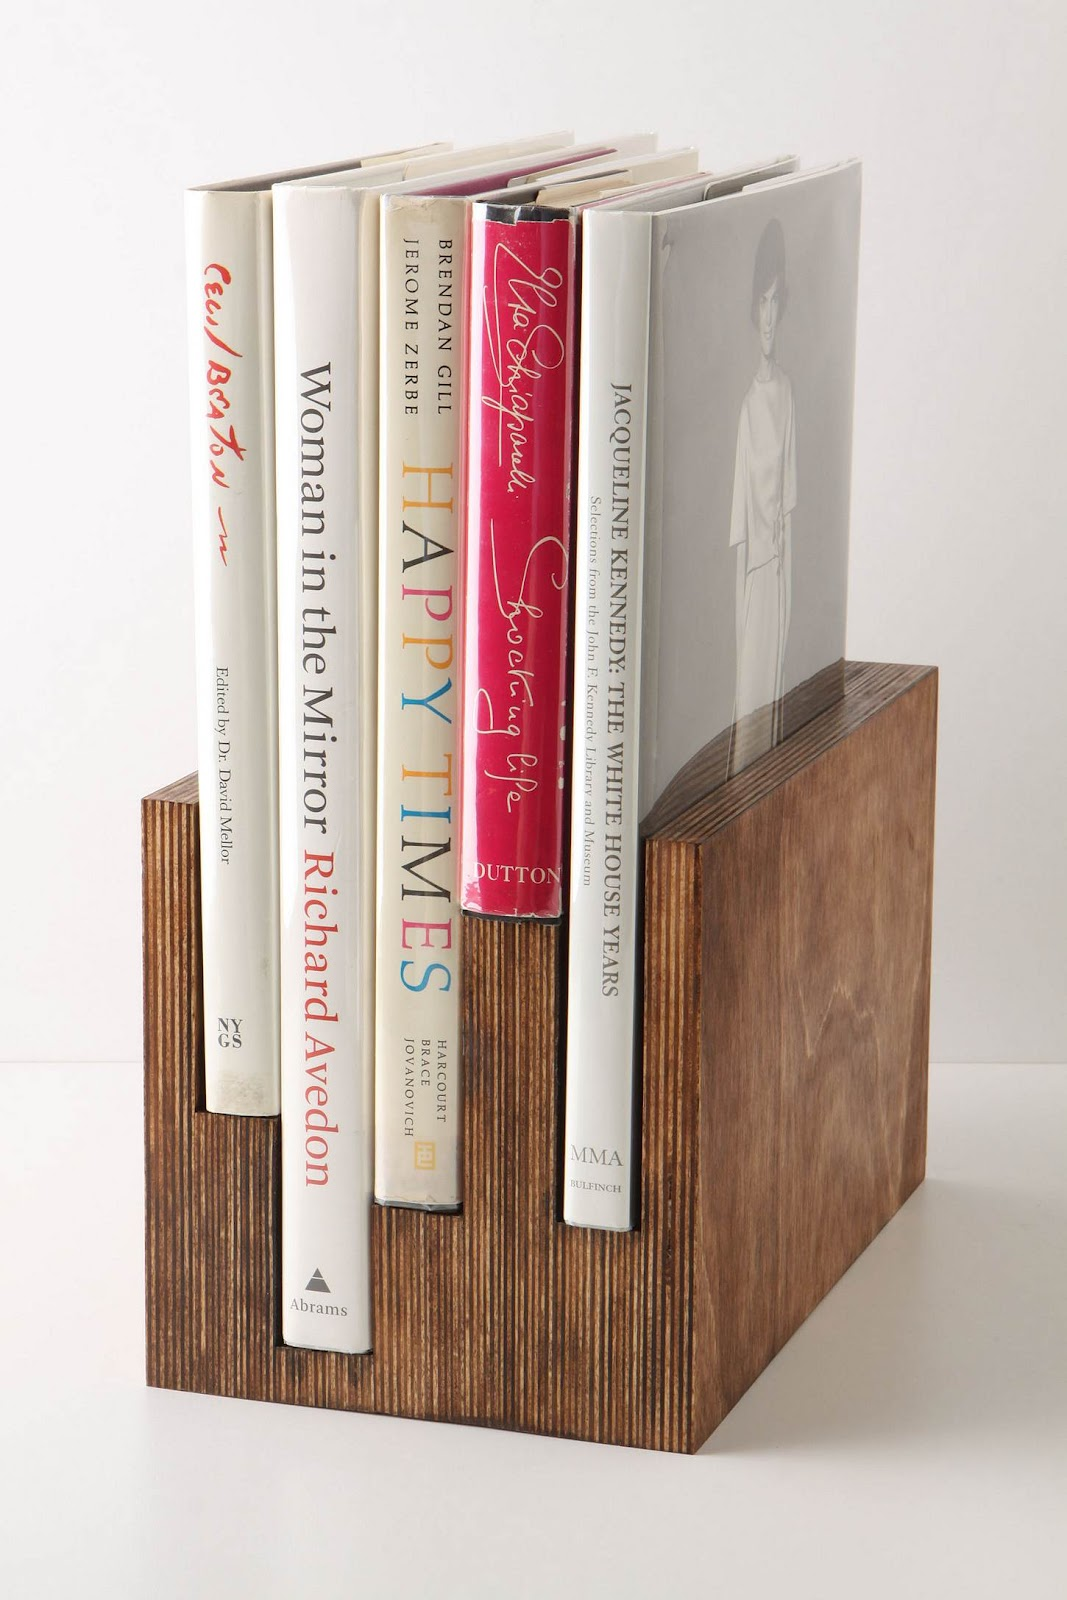 LindO Designs: DIY Designer Book Holder [interior Design]